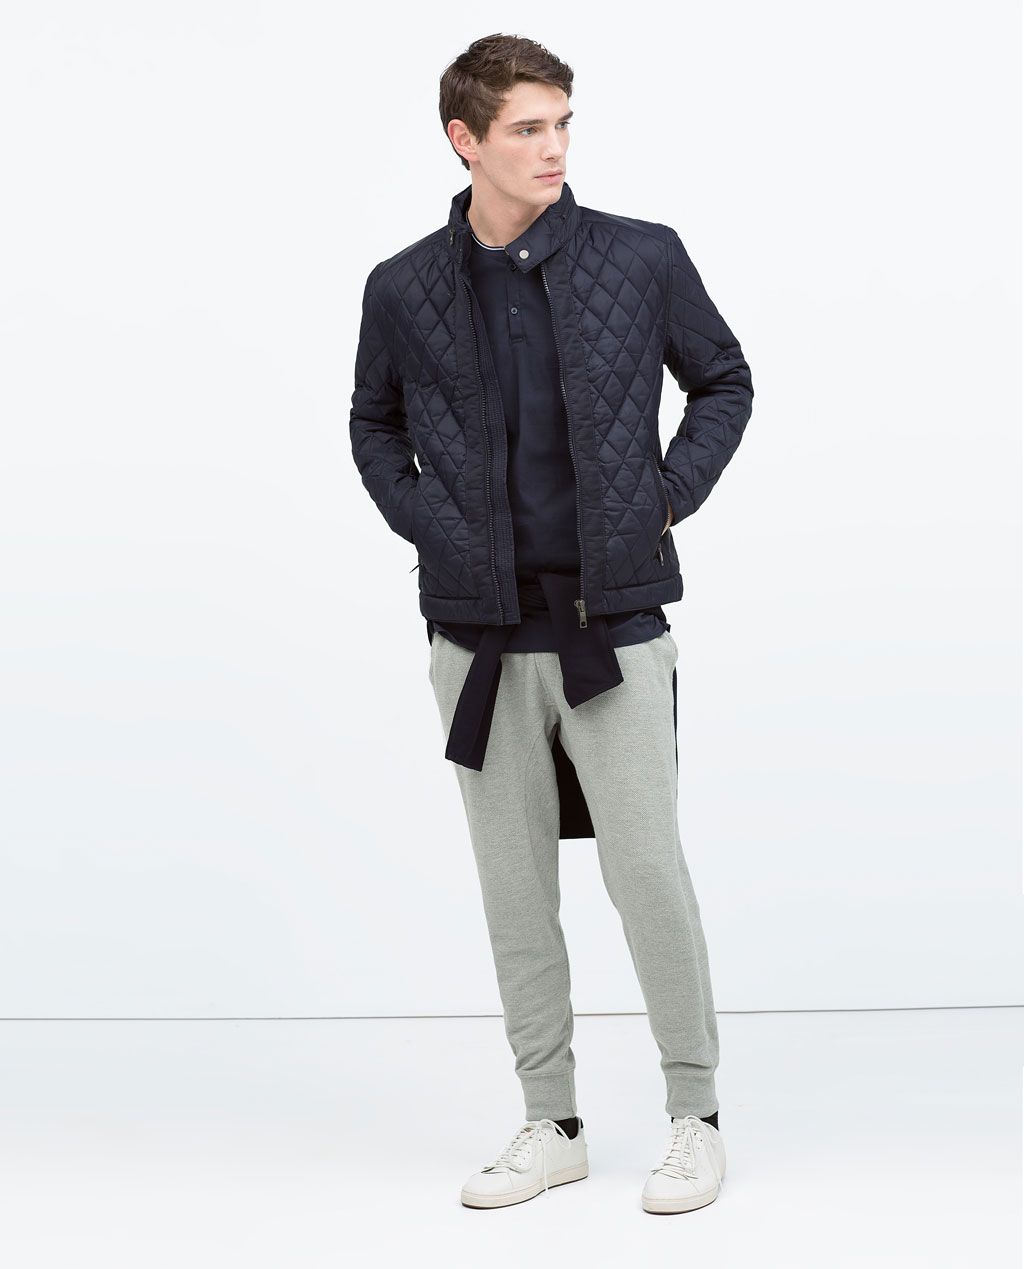 8d1fee599 ZARA - MAN - QUILTED JACKET in navy blue | Men's Stylish Outerwear ...